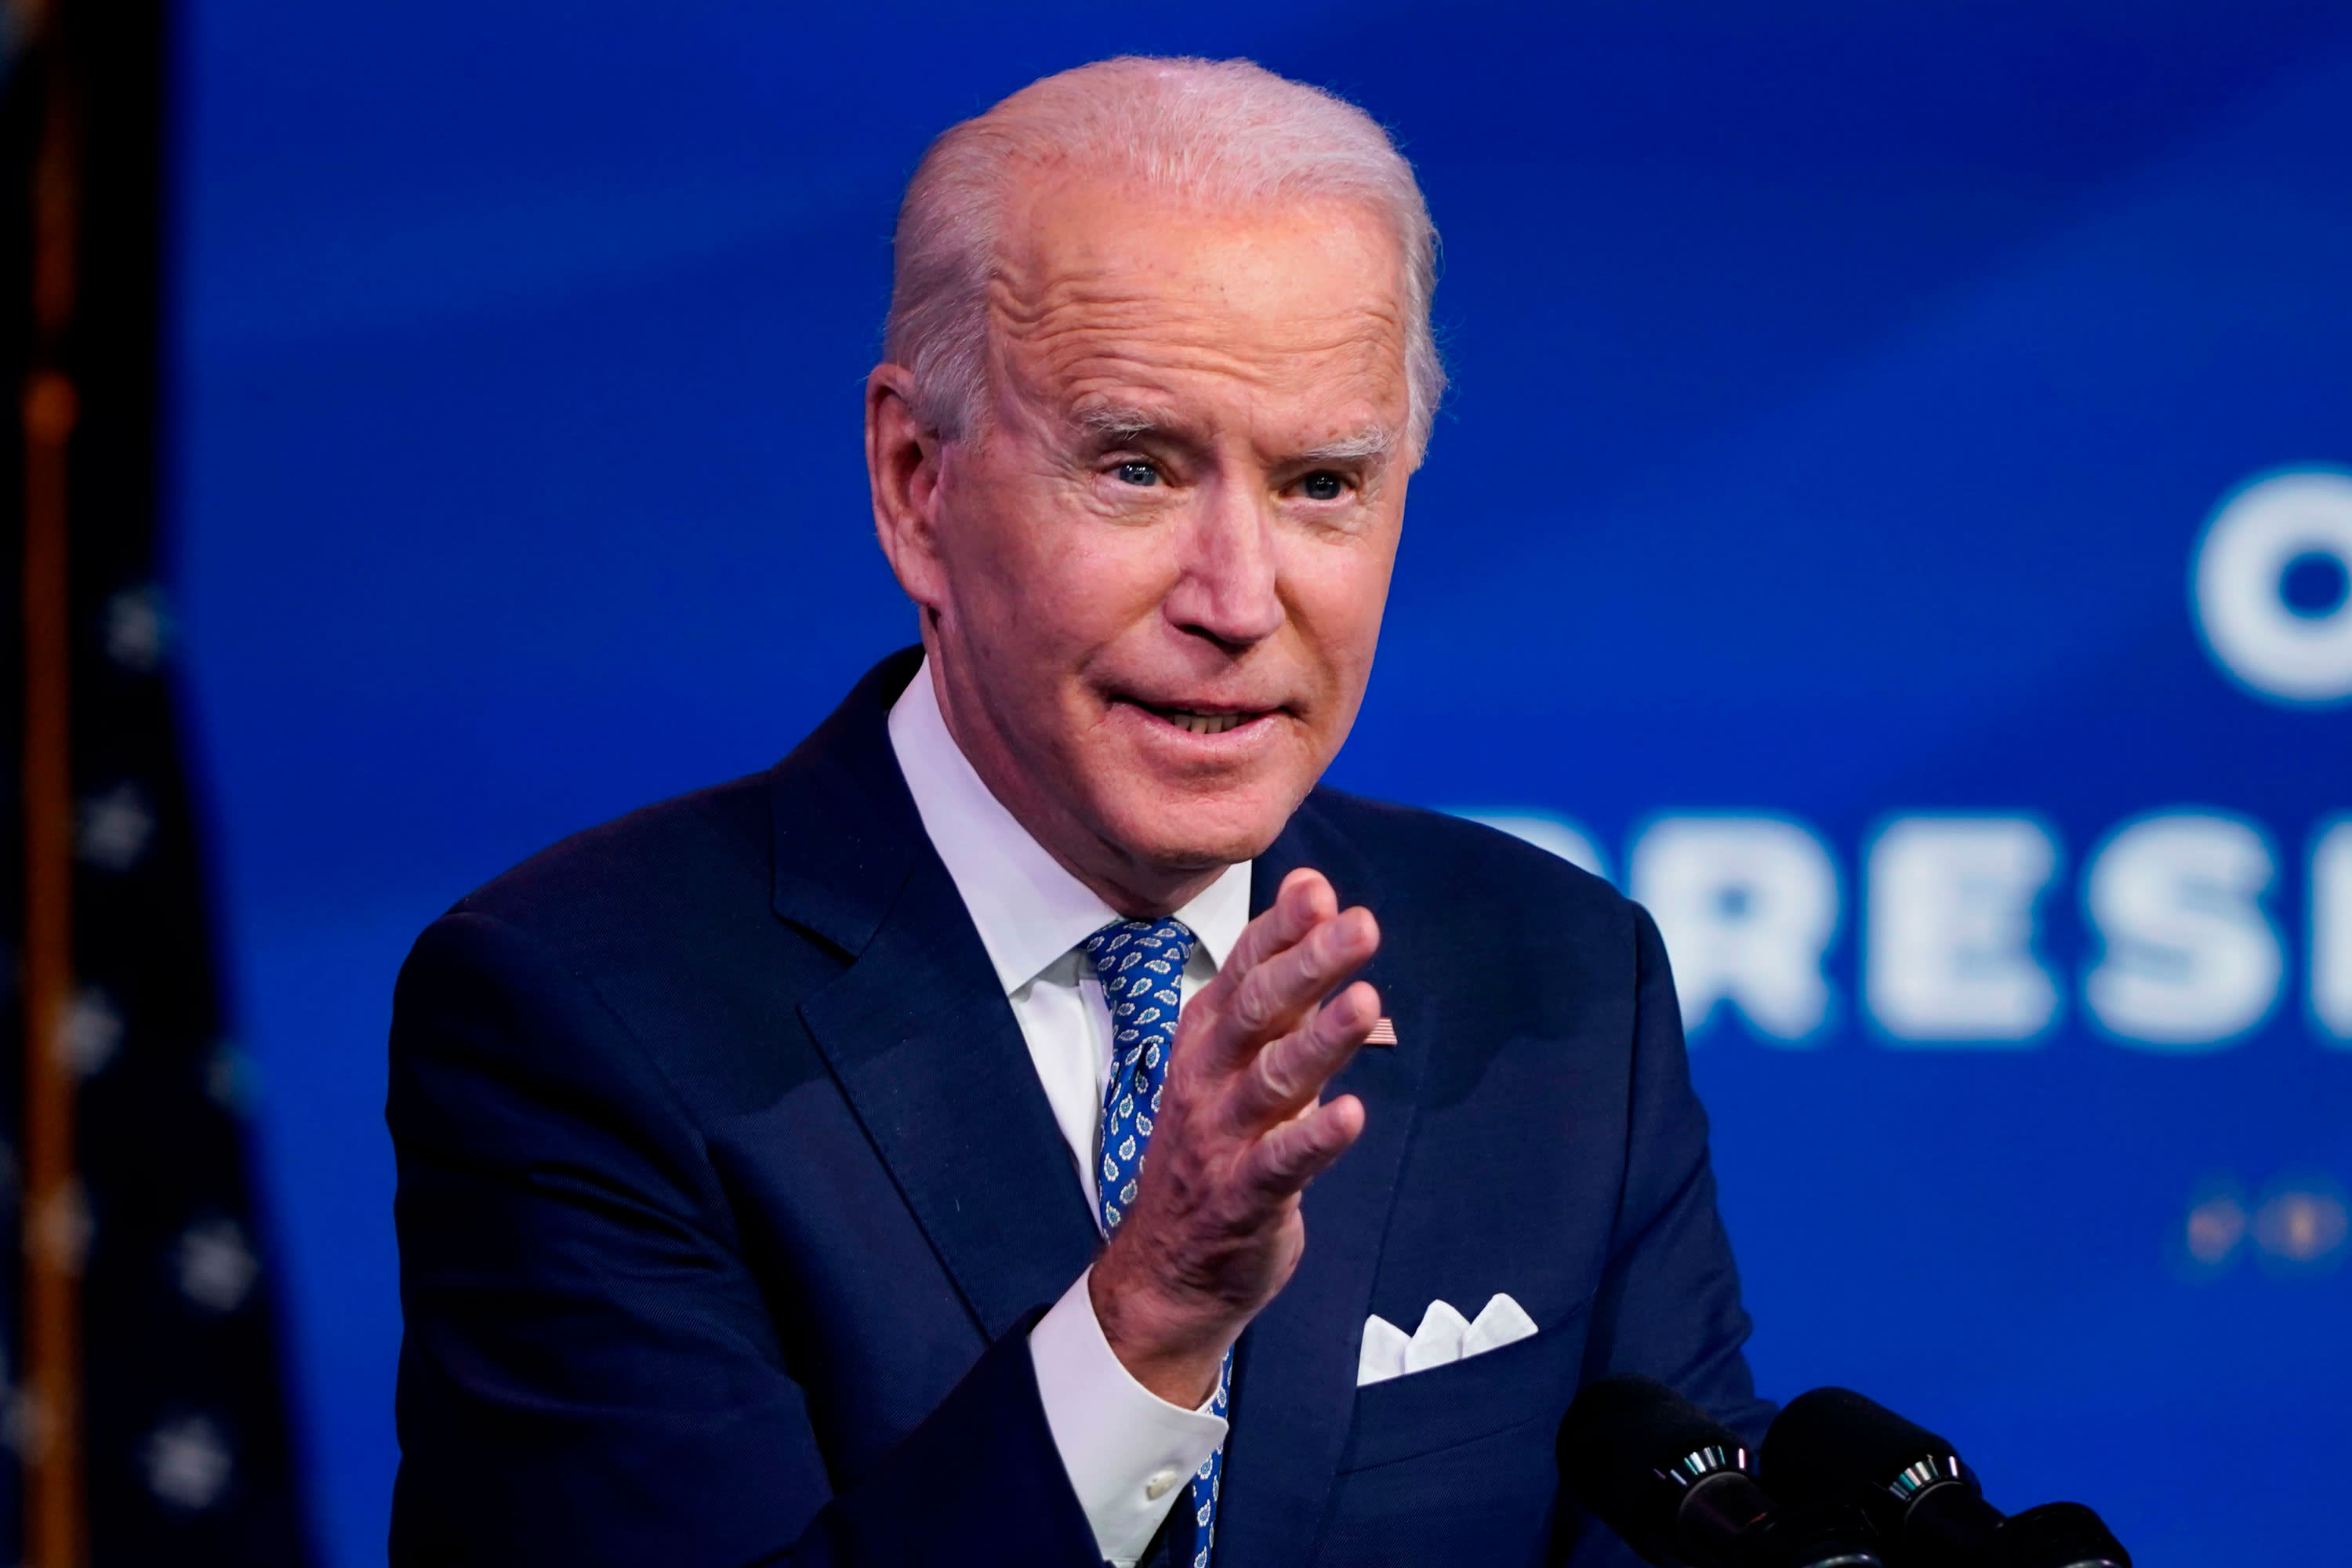 Biden warns doses won't stop deaths of 'tens of thousands' Americans